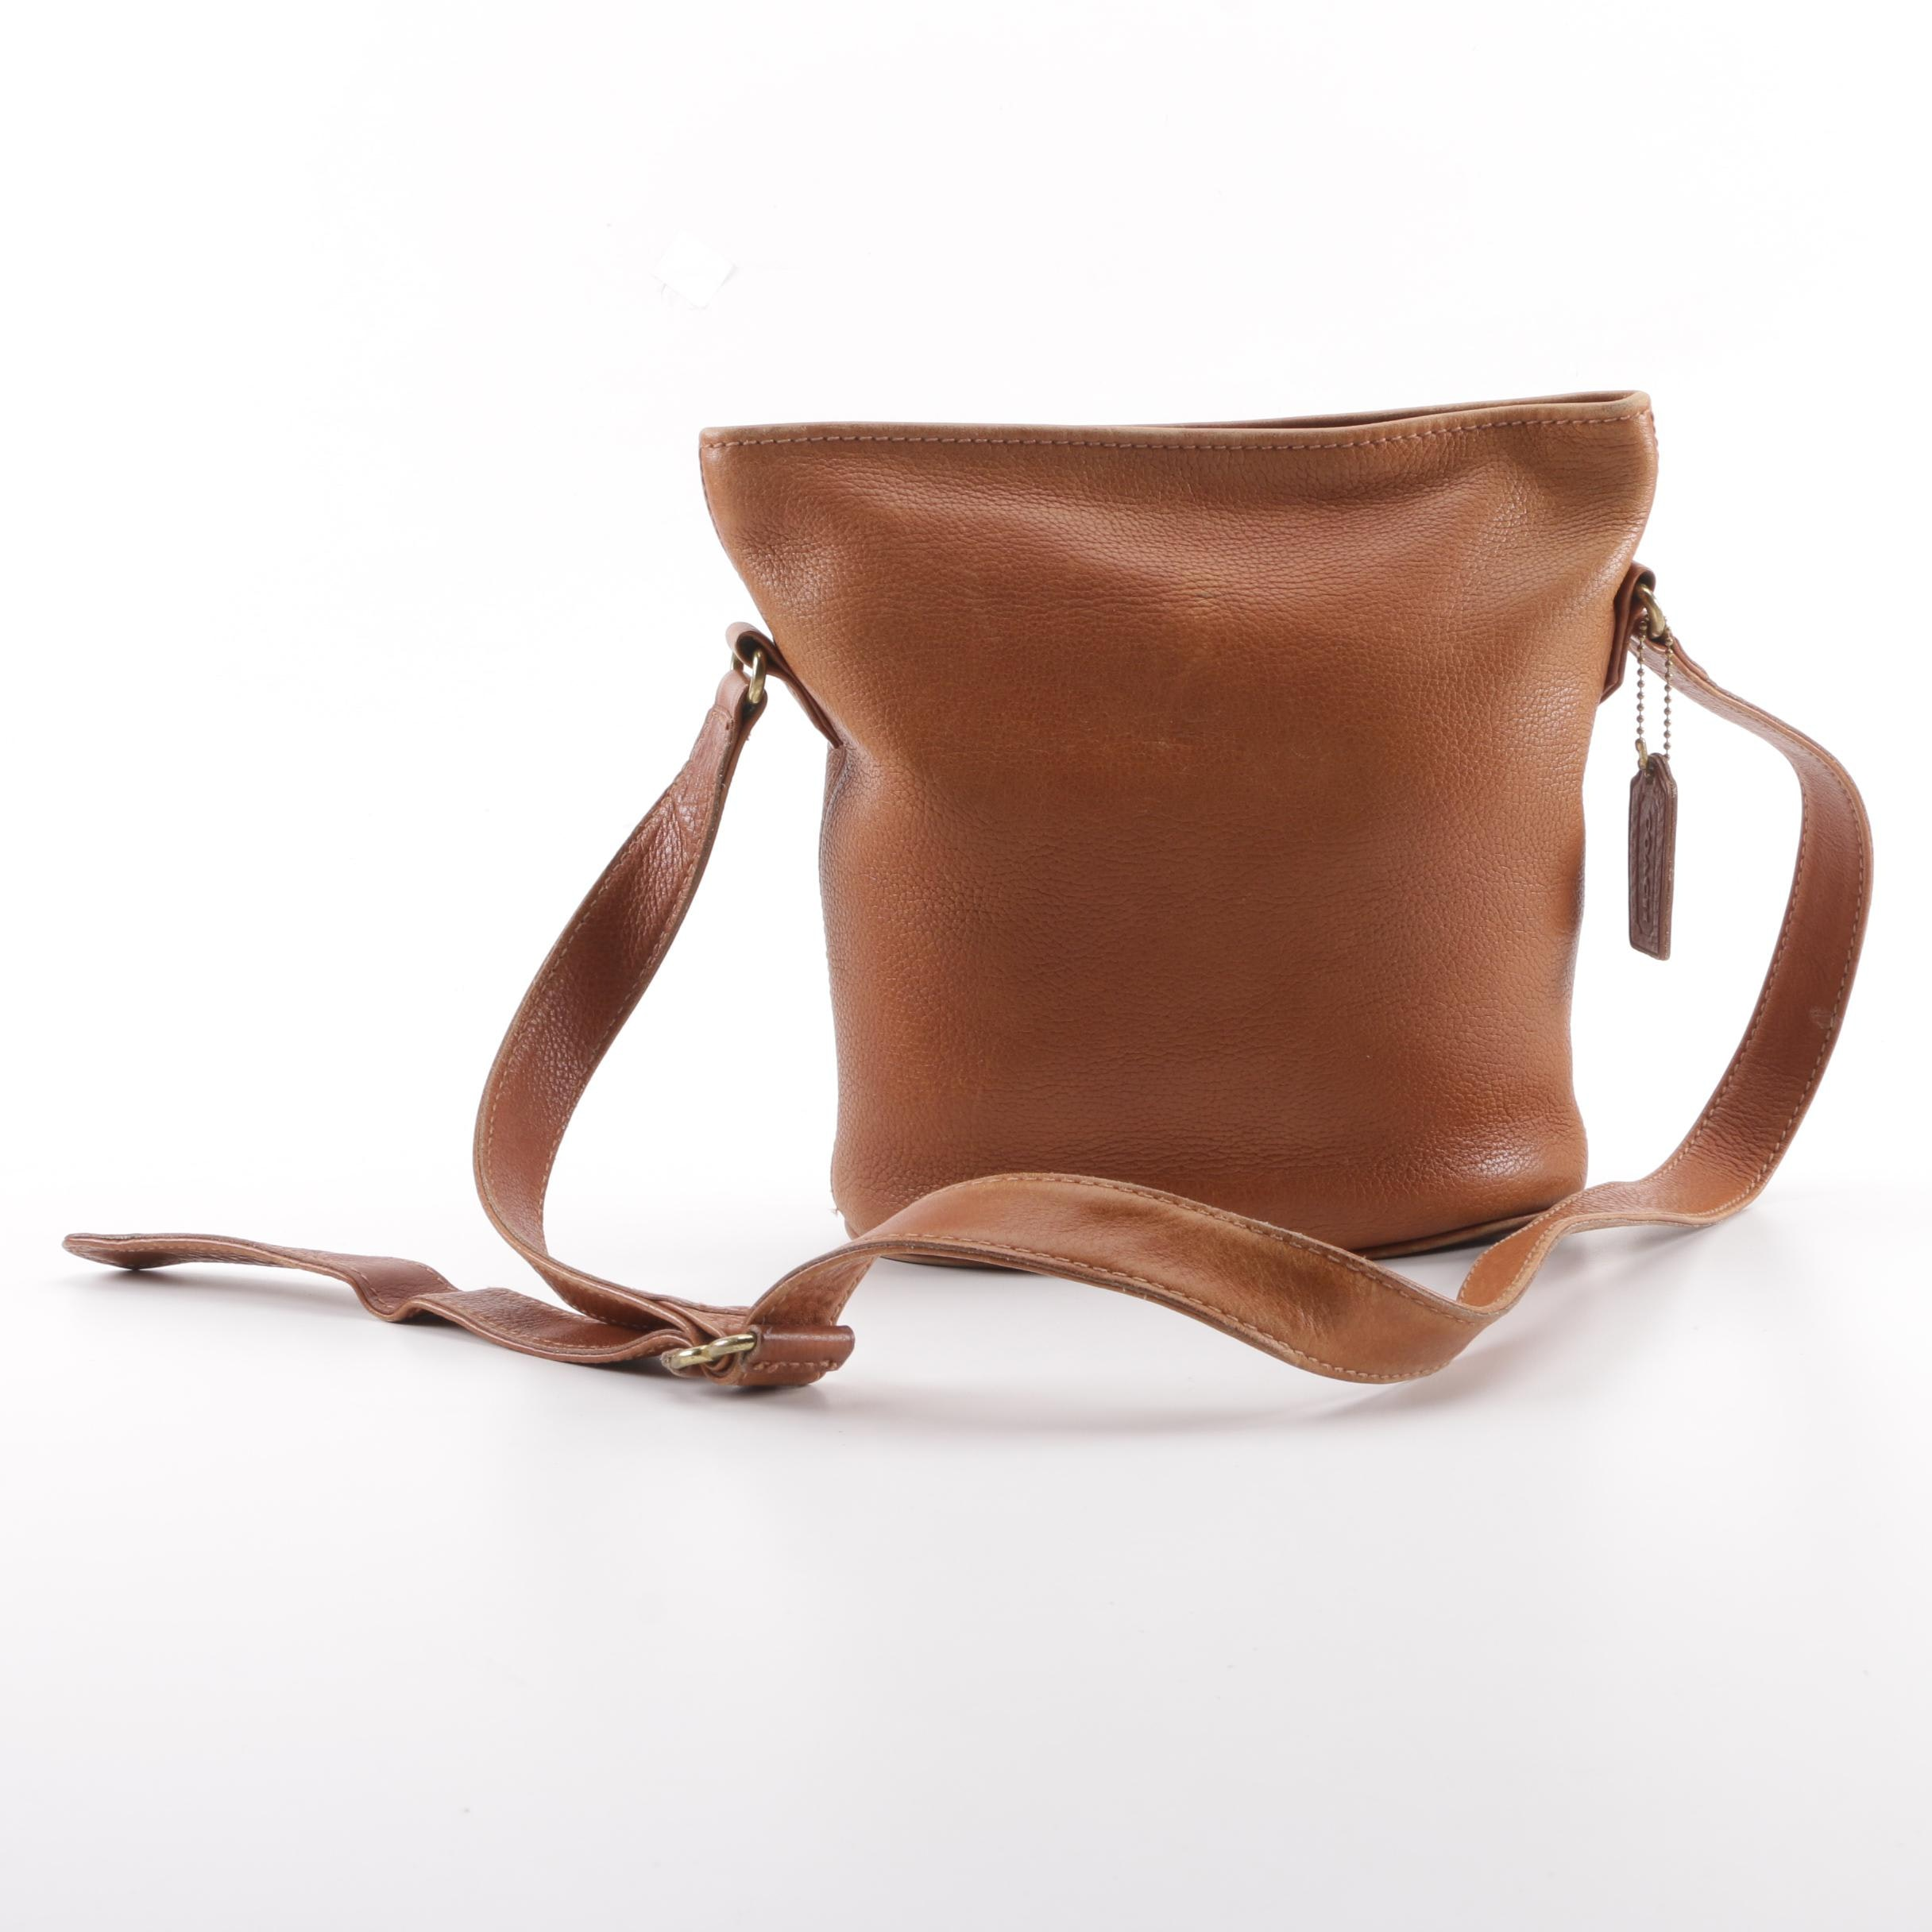 1994 Coach Sonoma Brown Leather Bucket Bag